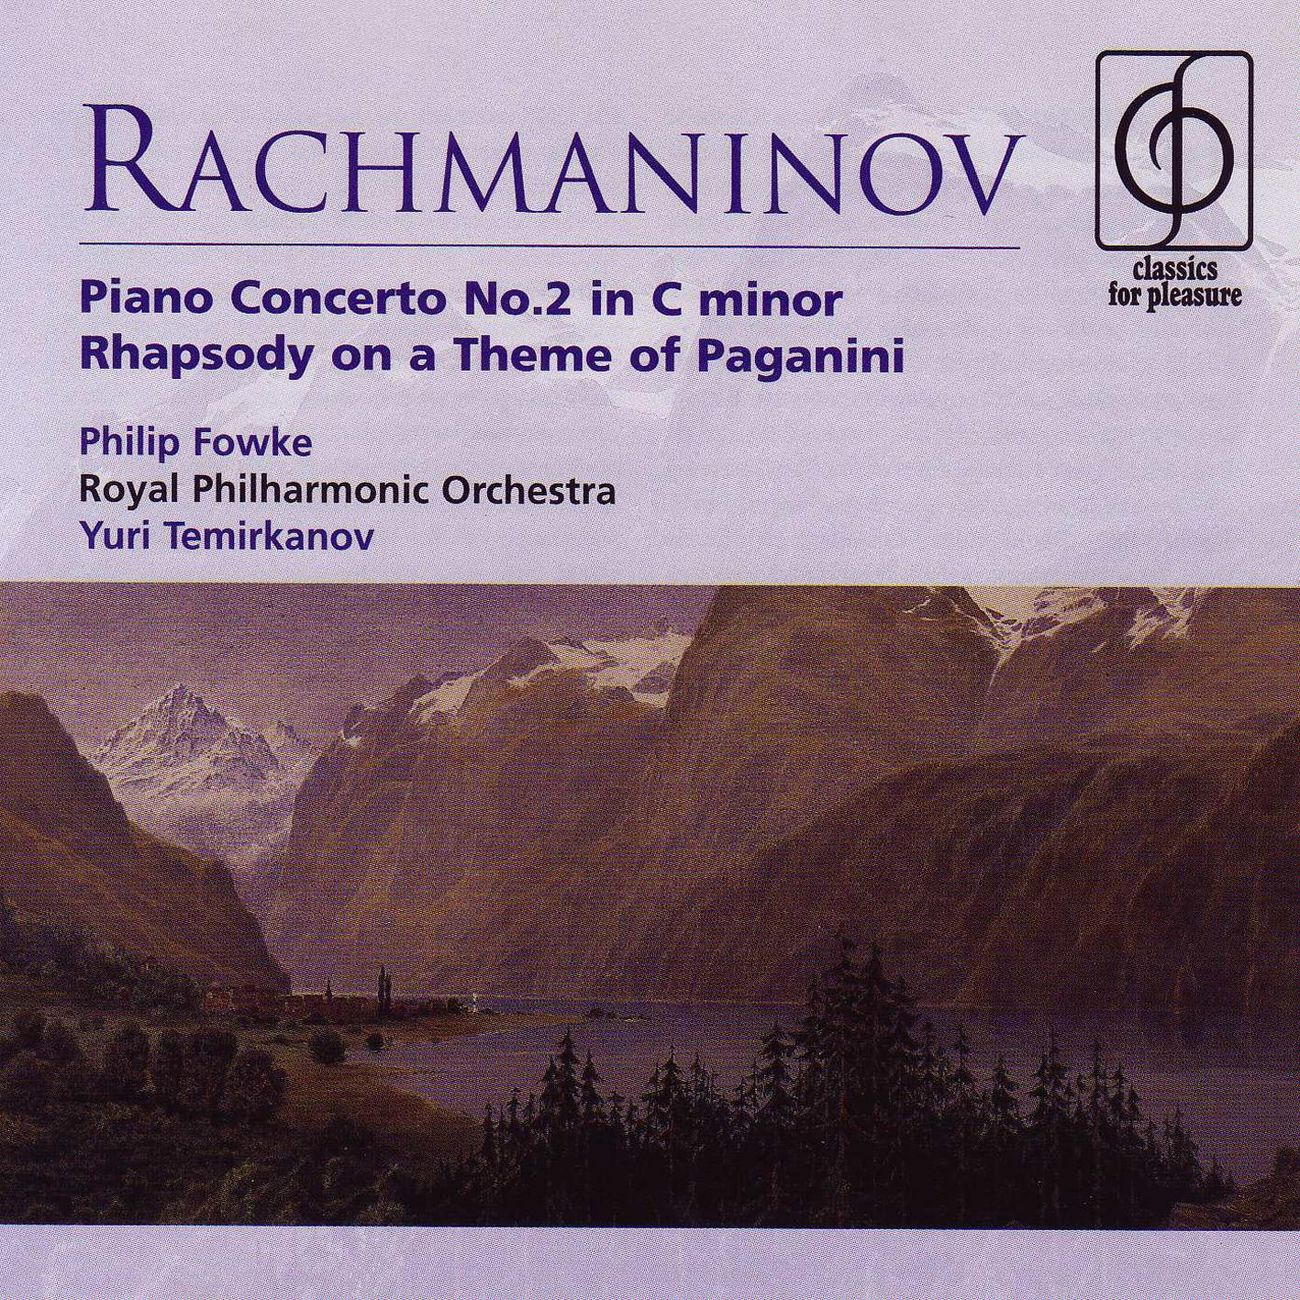 Rhapsody on a Theme of Paganini Op. 43: Variation XI (Moderato)